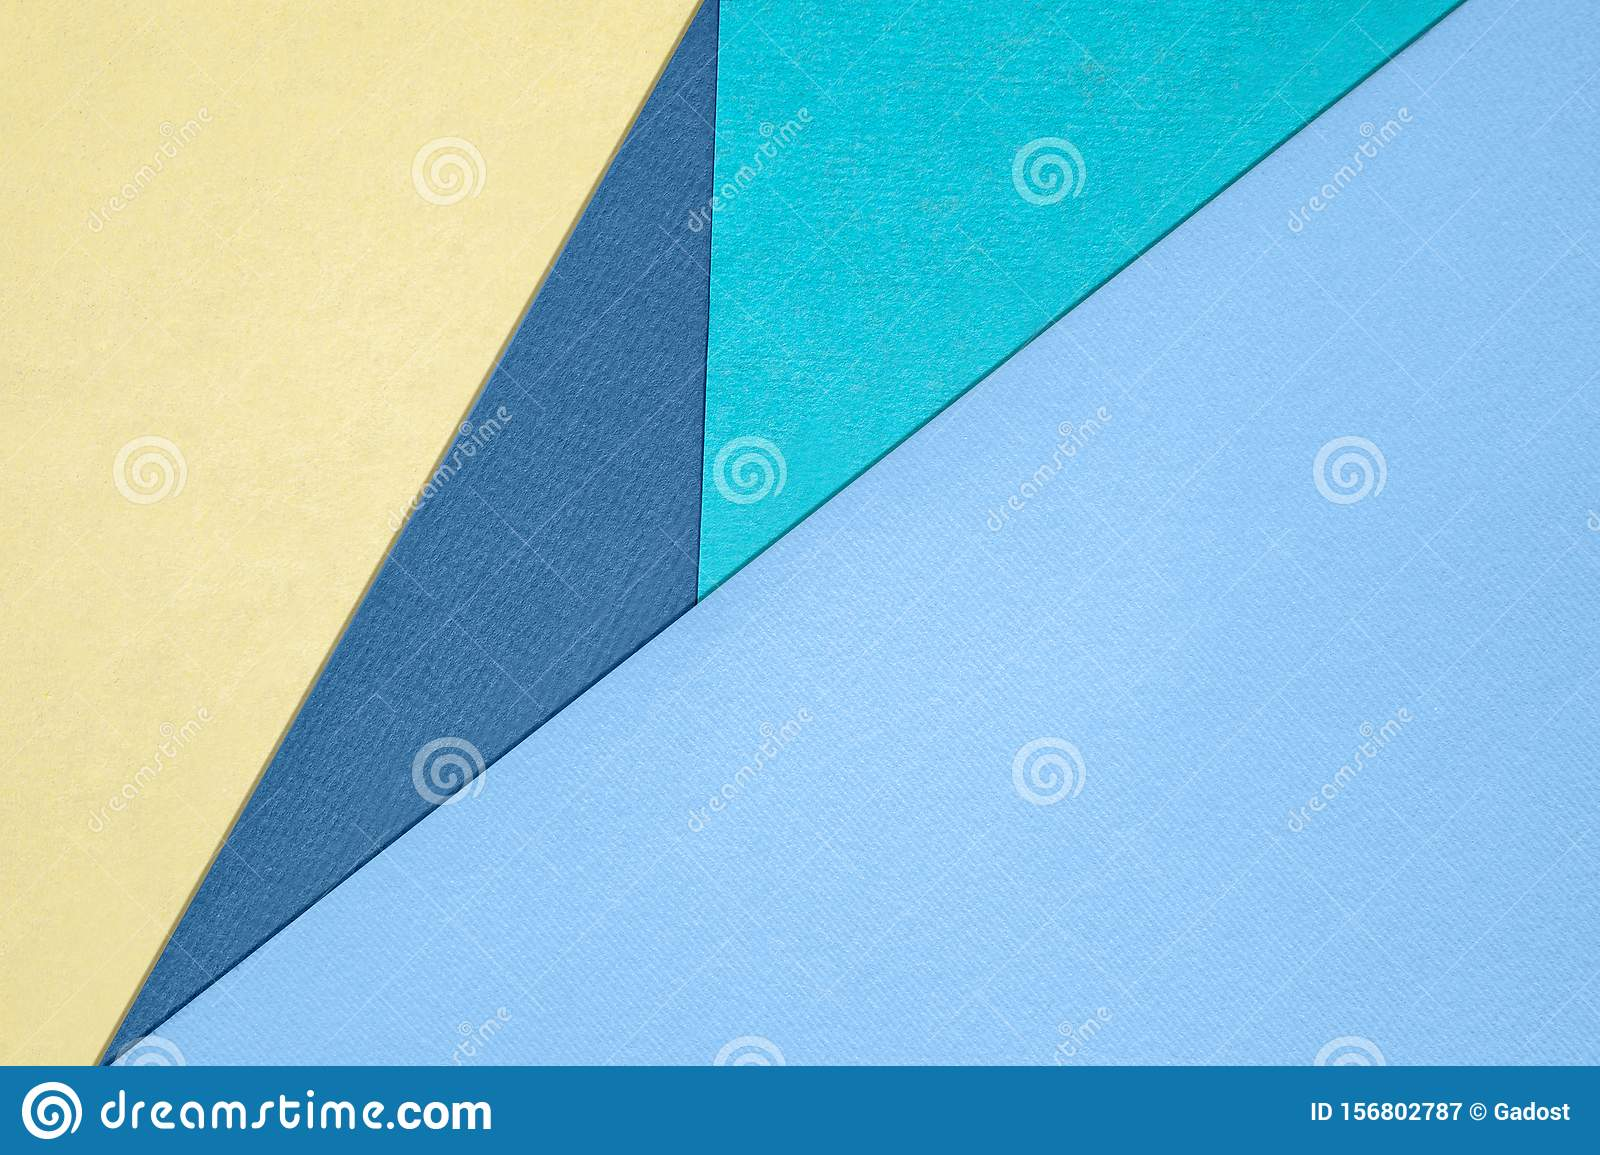 Different pastel colored paper backgrounds with place for text